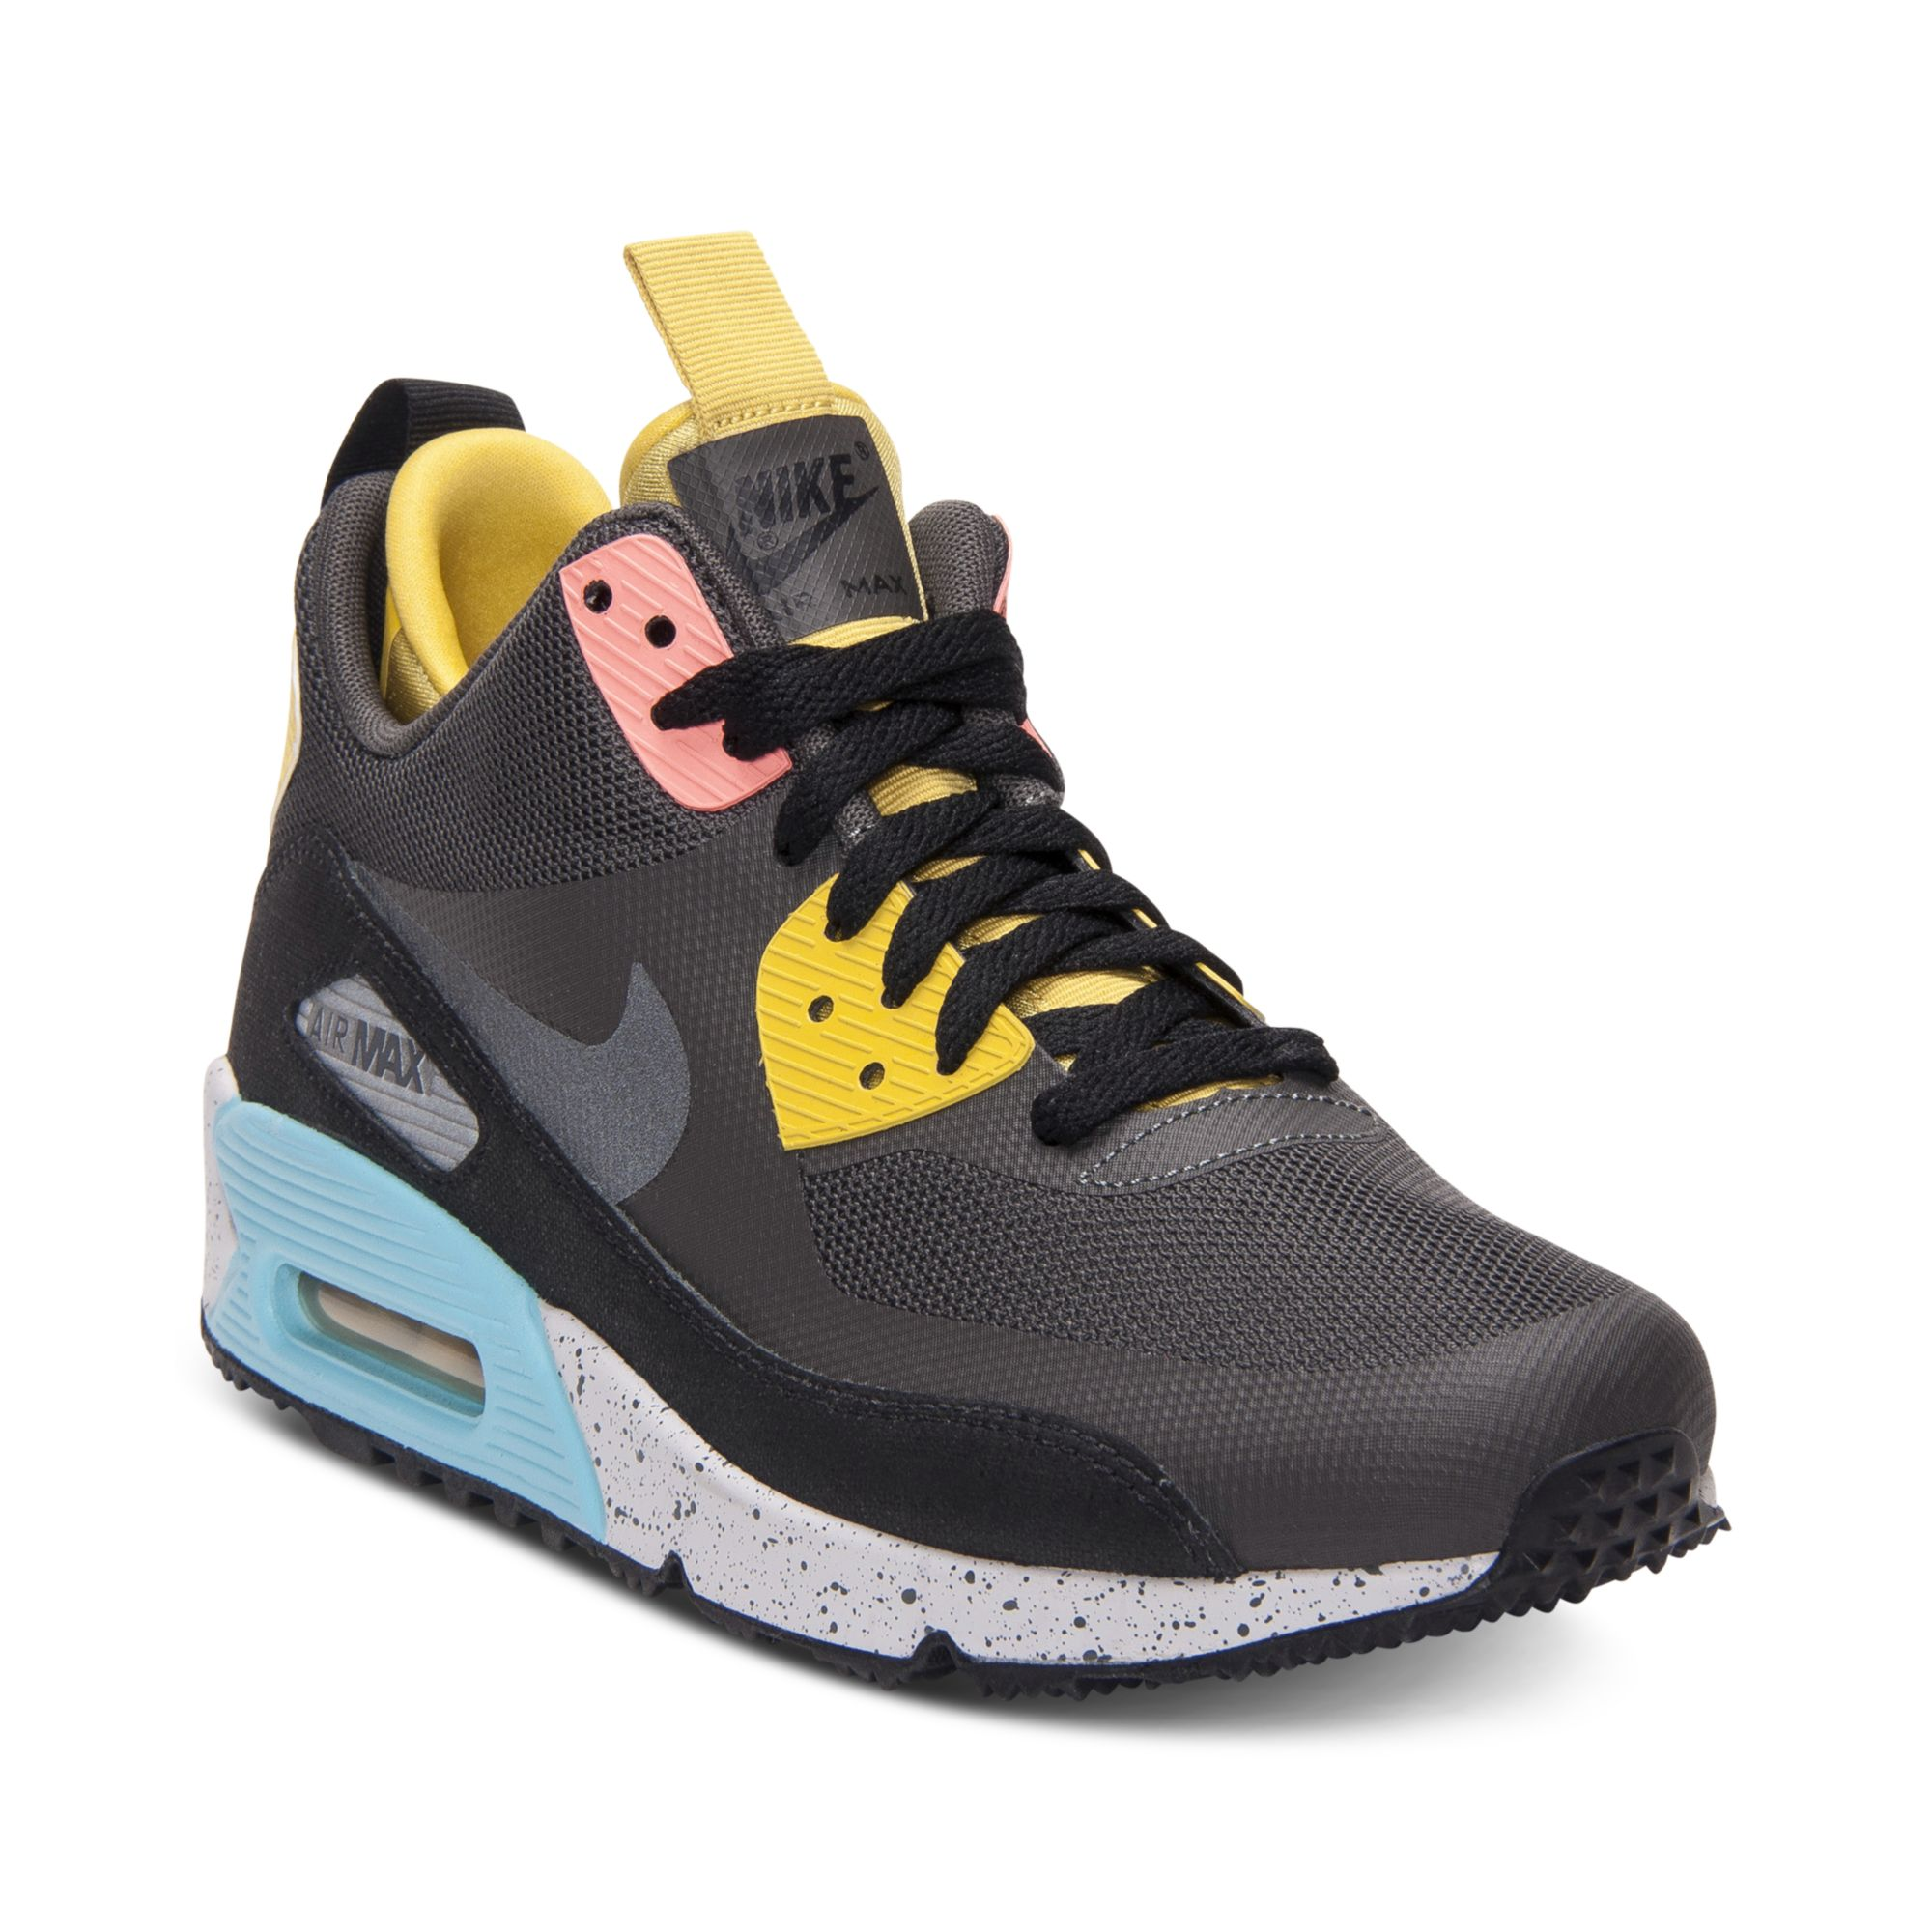 2dfbf4f8ccbcd nike -charred-greyblackpink-air-max-90-mid-no-sew-running-sneakers-product-1-14297116-285818334.jpeg